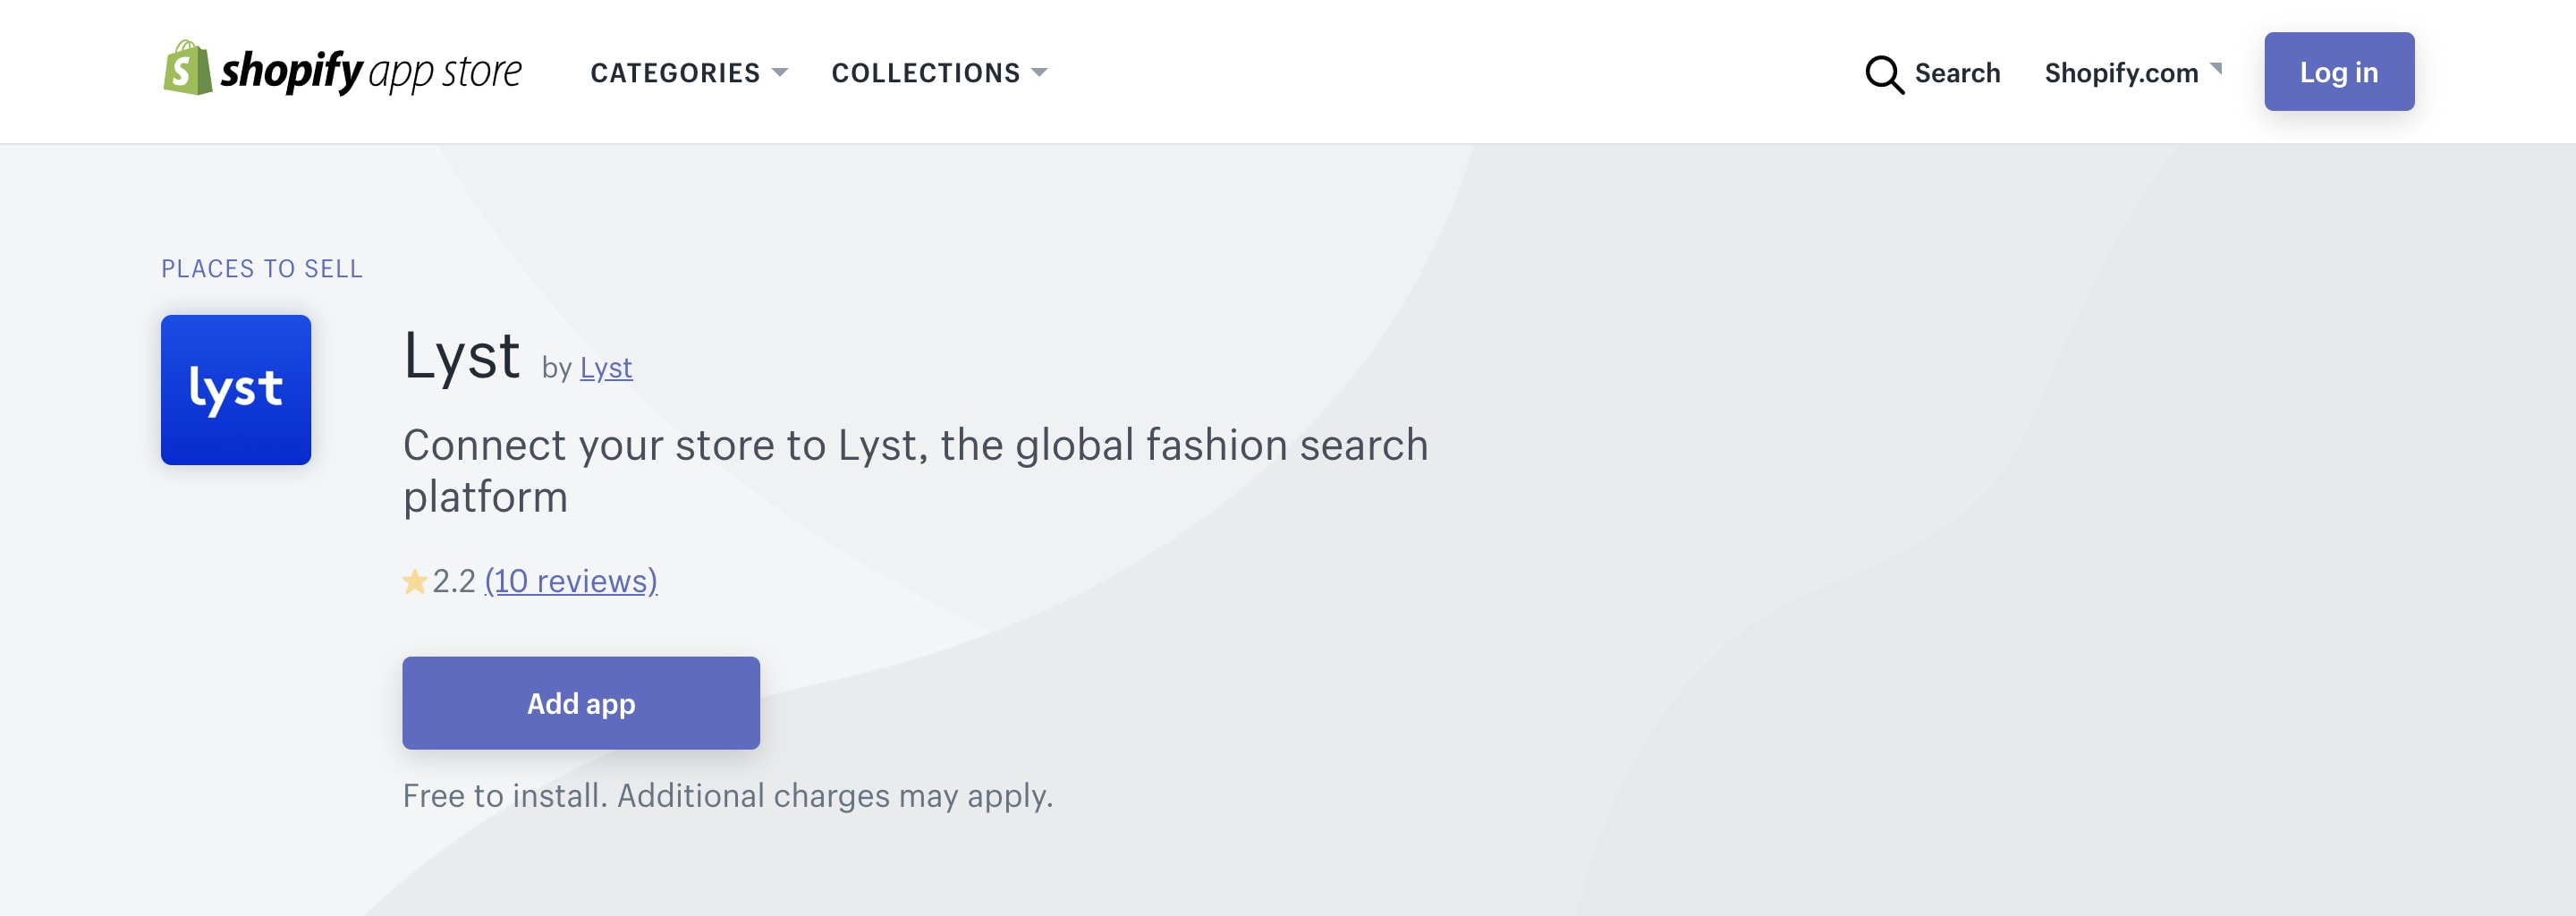 Shopify Lyst channel.